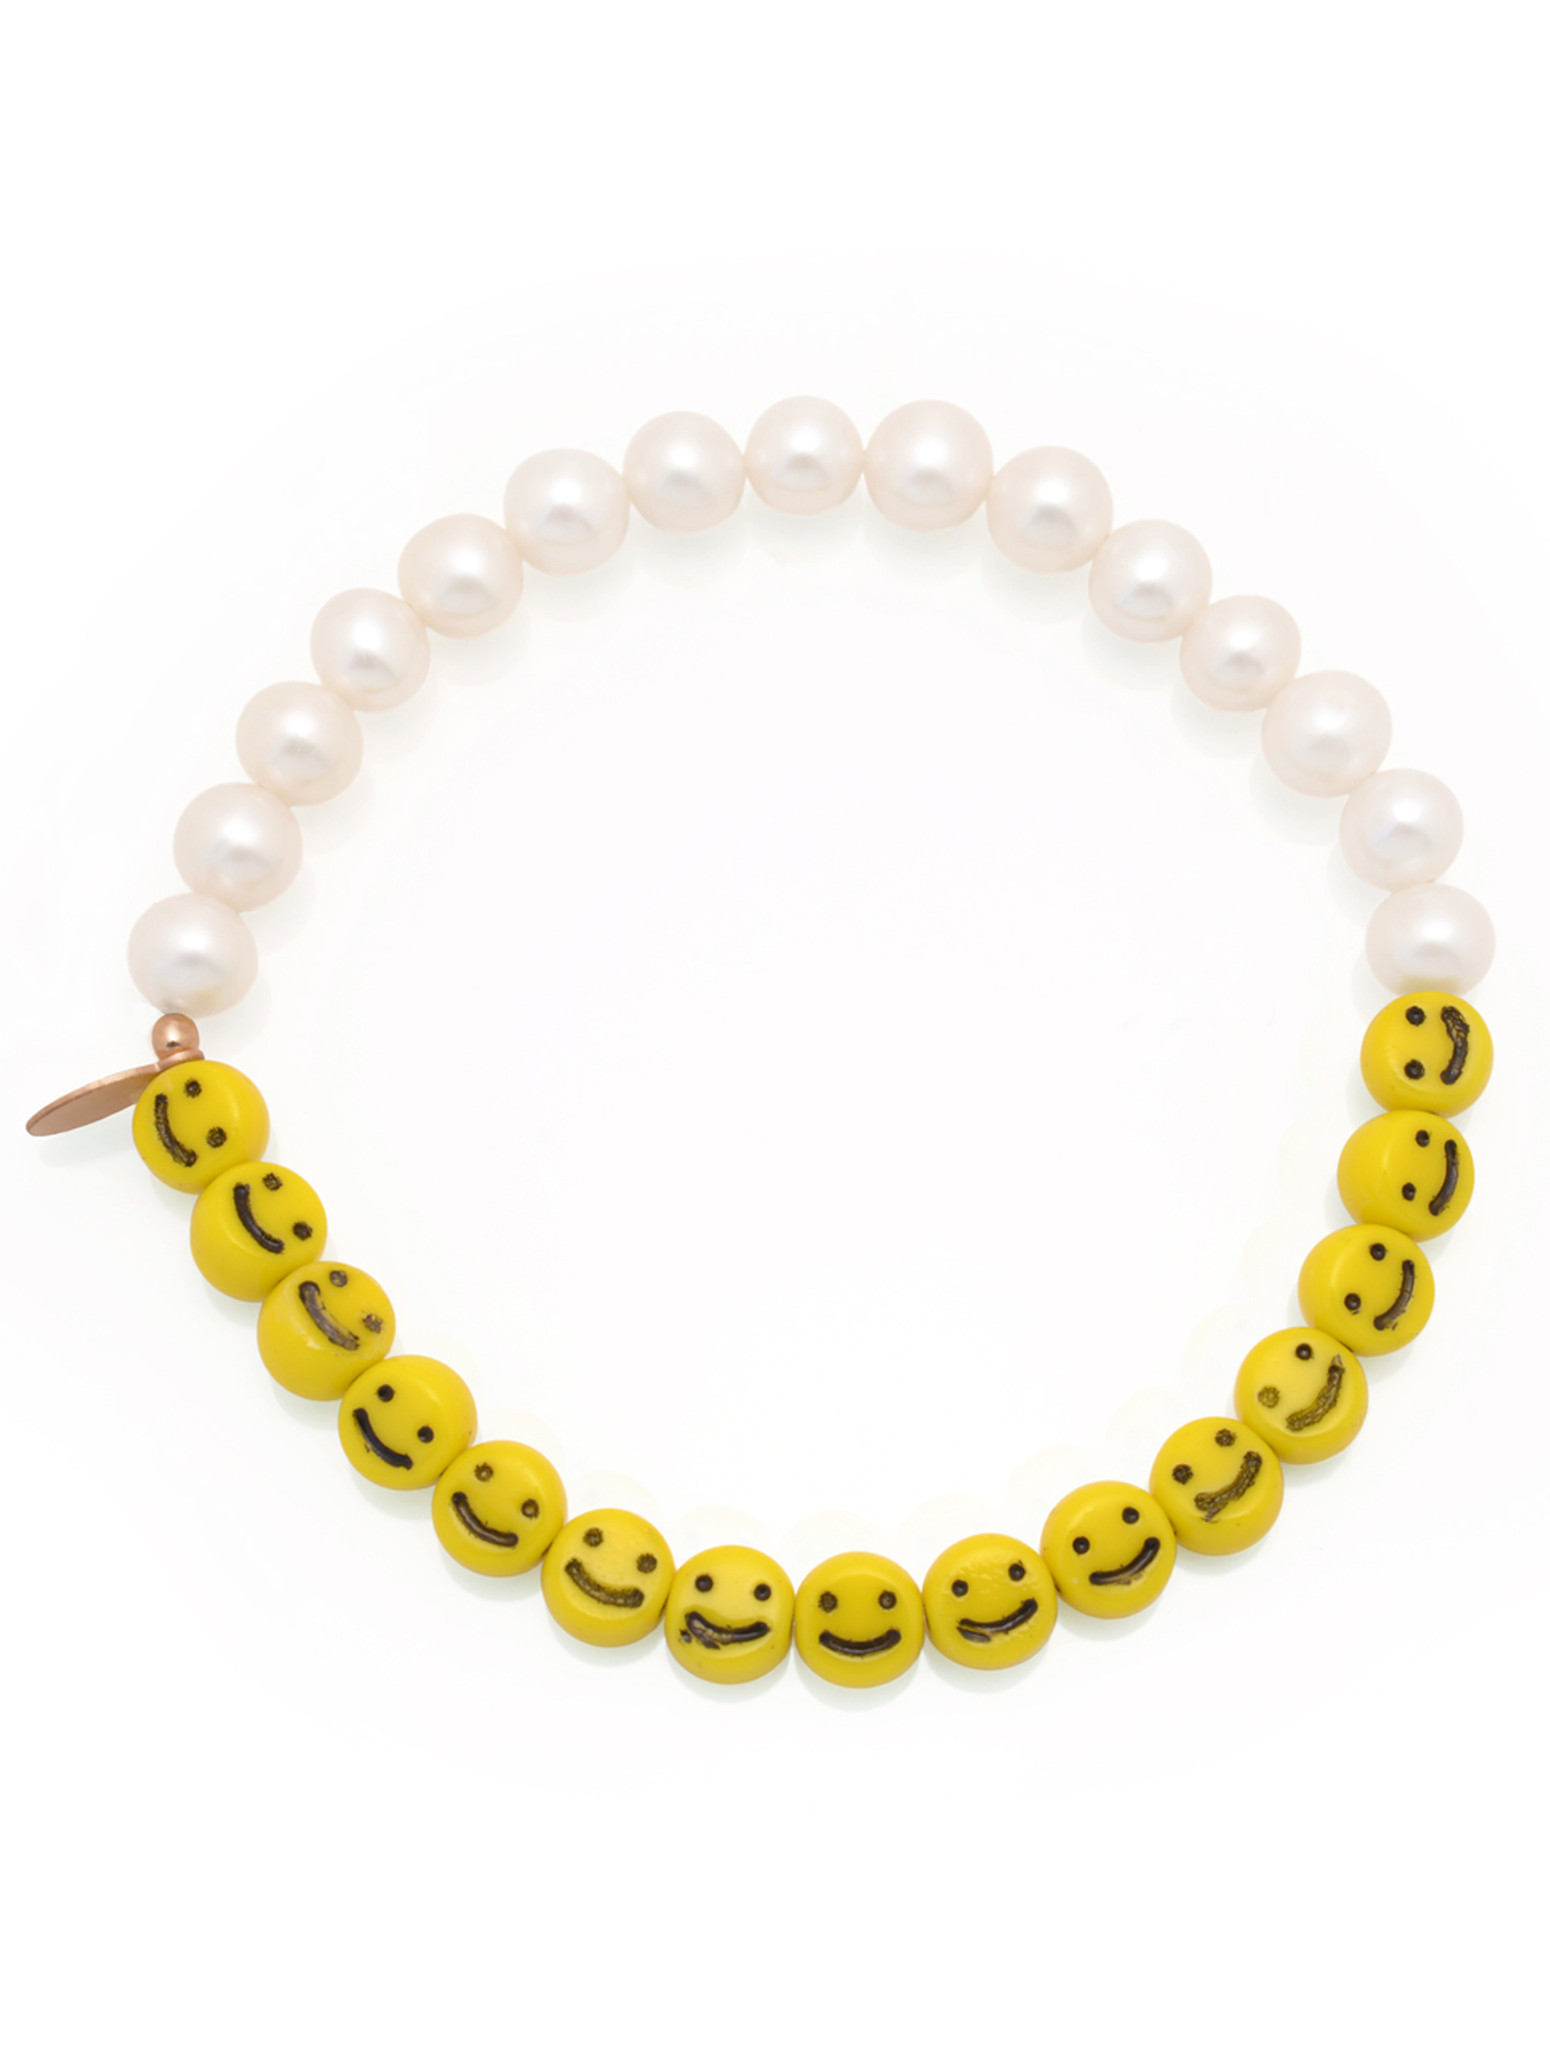 Front view of Cultured Freshwater Pearl Bracelet with Smiley Face Emoji Glass Beads by Jewelry Designer Nektar De Stagni